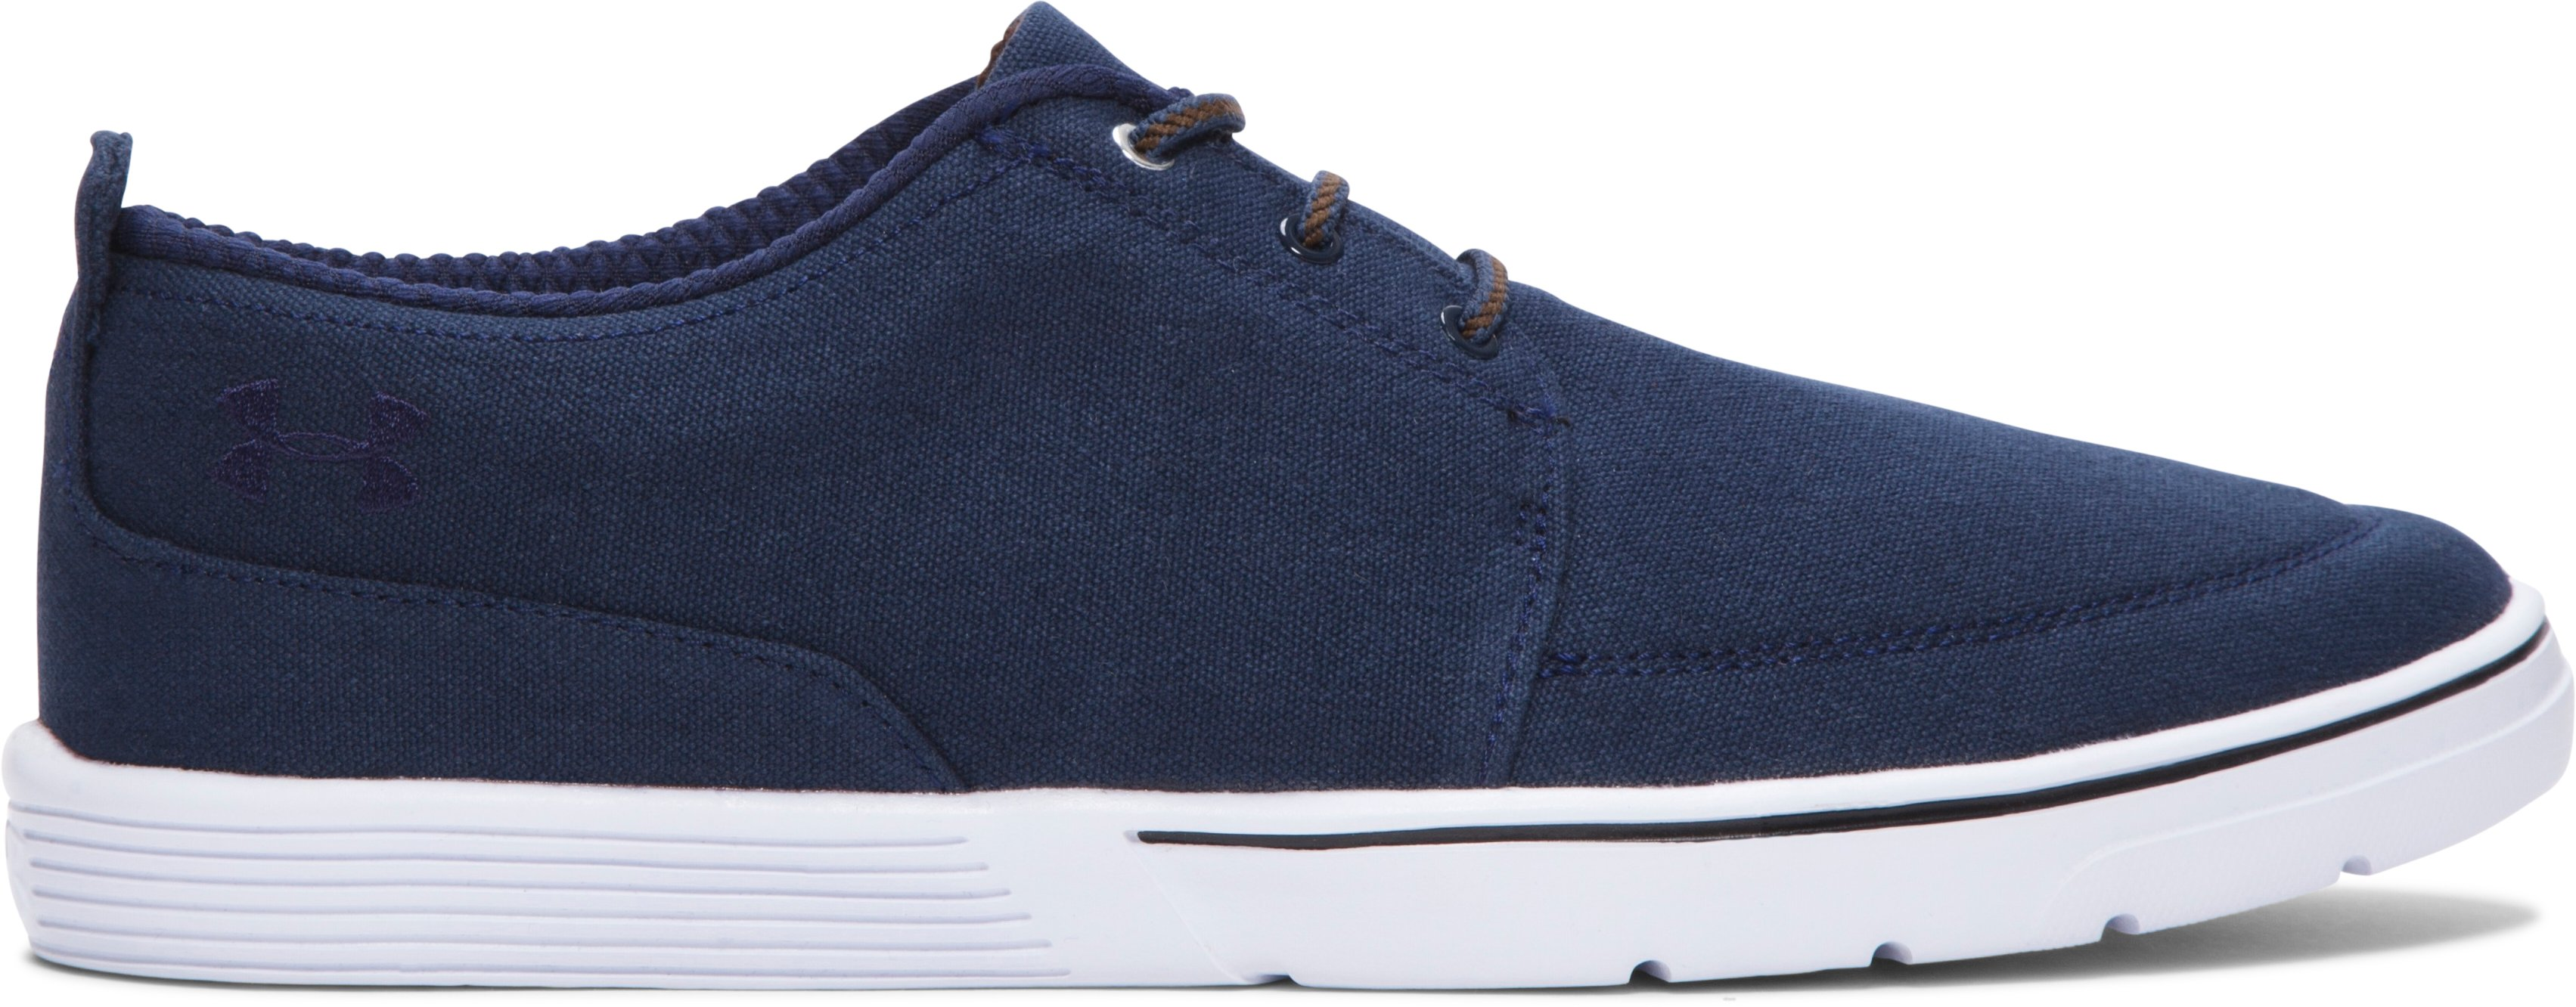 Men's UA Street Encounter II Shoes, Midnight Navy